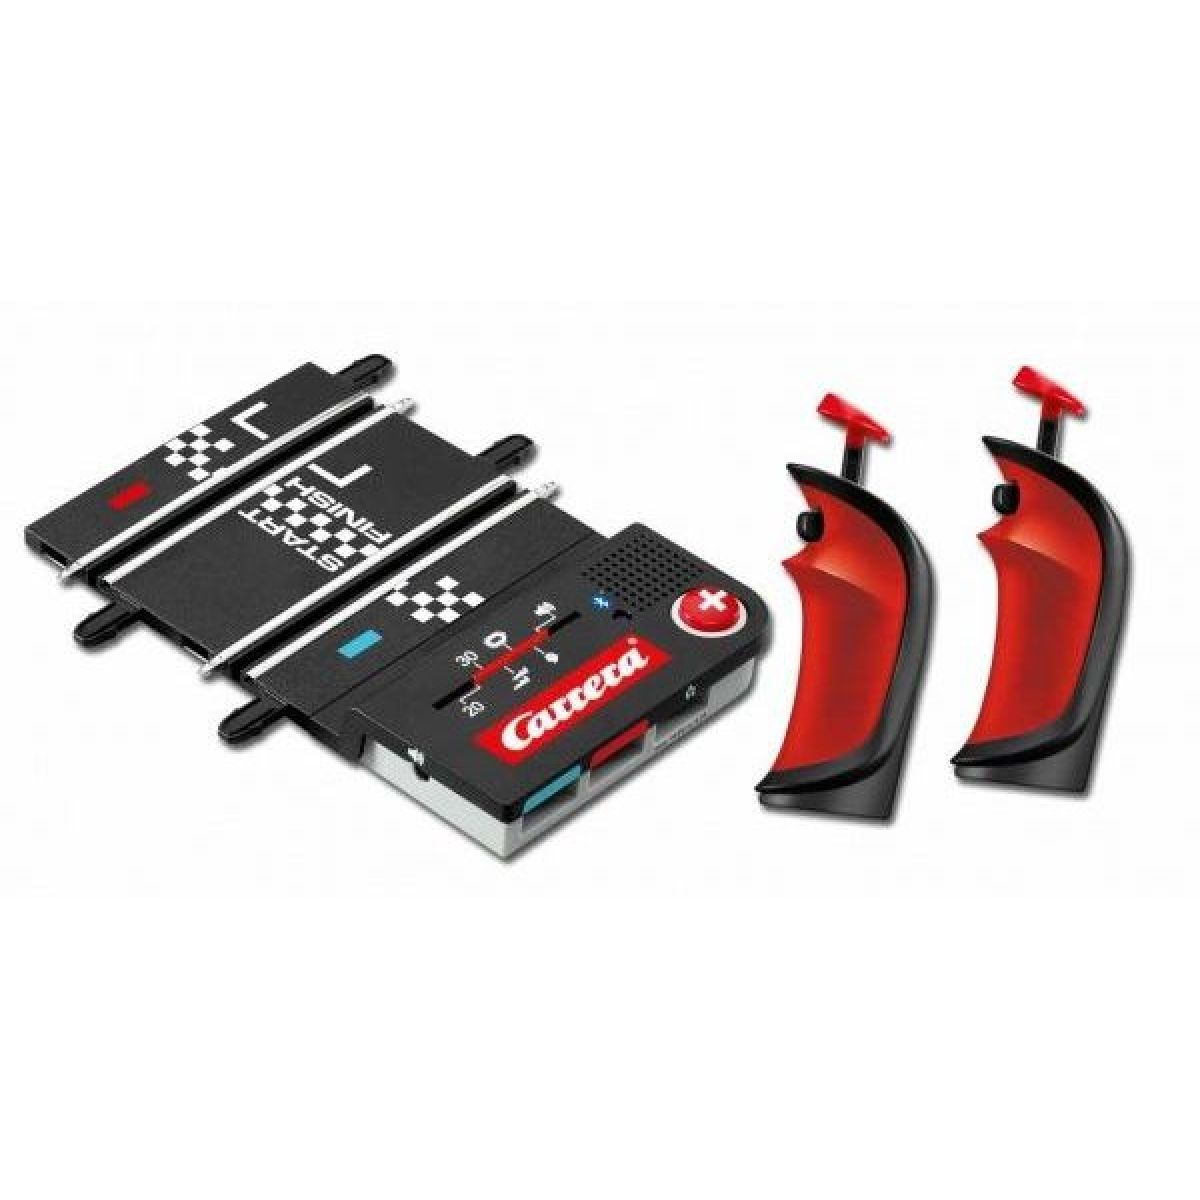 Carrera GO Plus 61665 Upgrade Kit